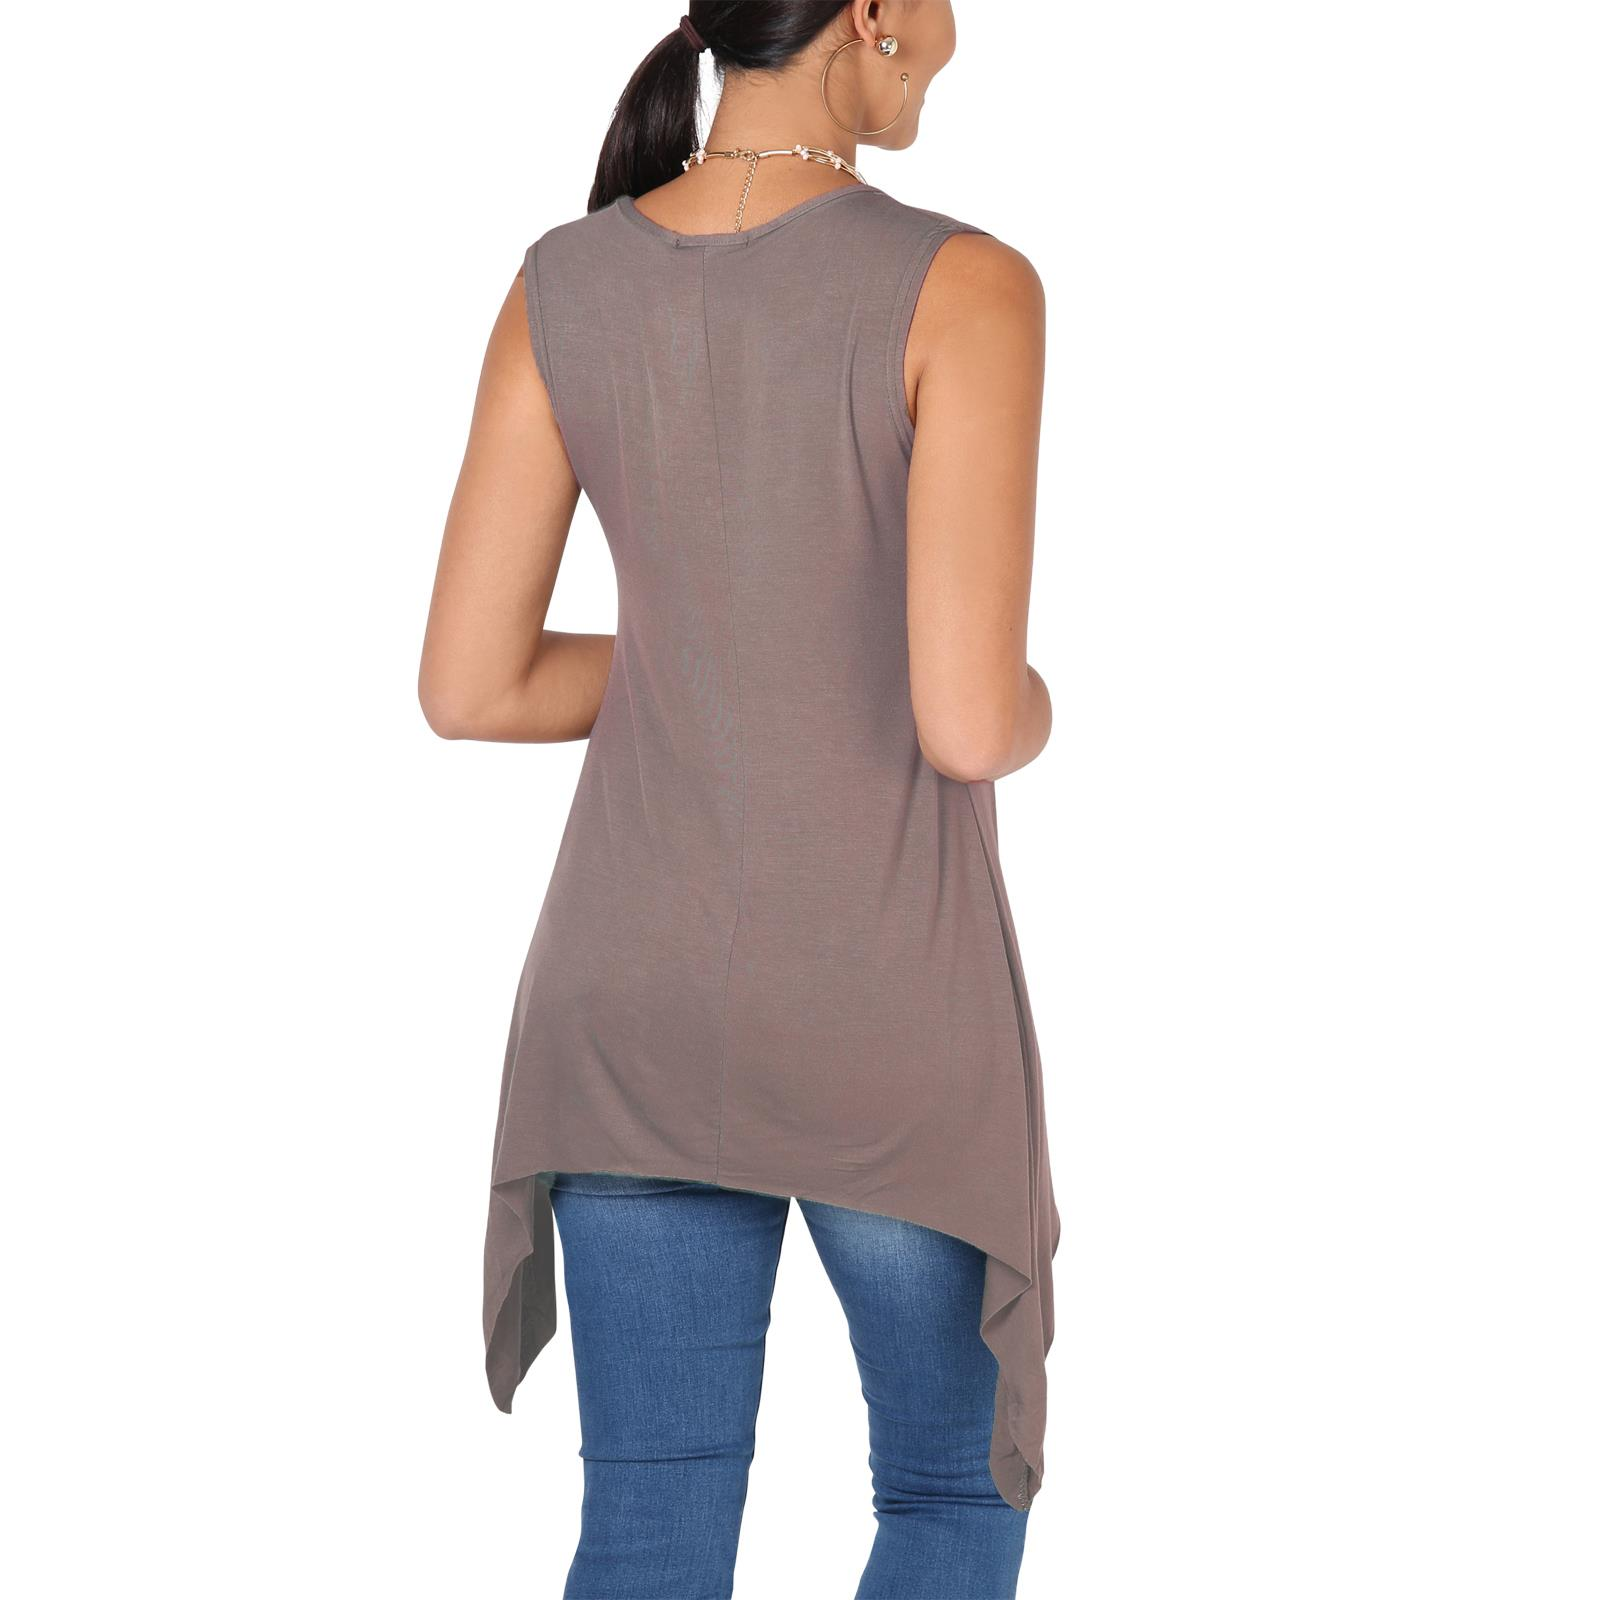 Women-Long-Top-Sleeveless-Pleated-Tee-Shirt-Tunic-Jersey-Stretch-Loose-Fit thumbnail 16